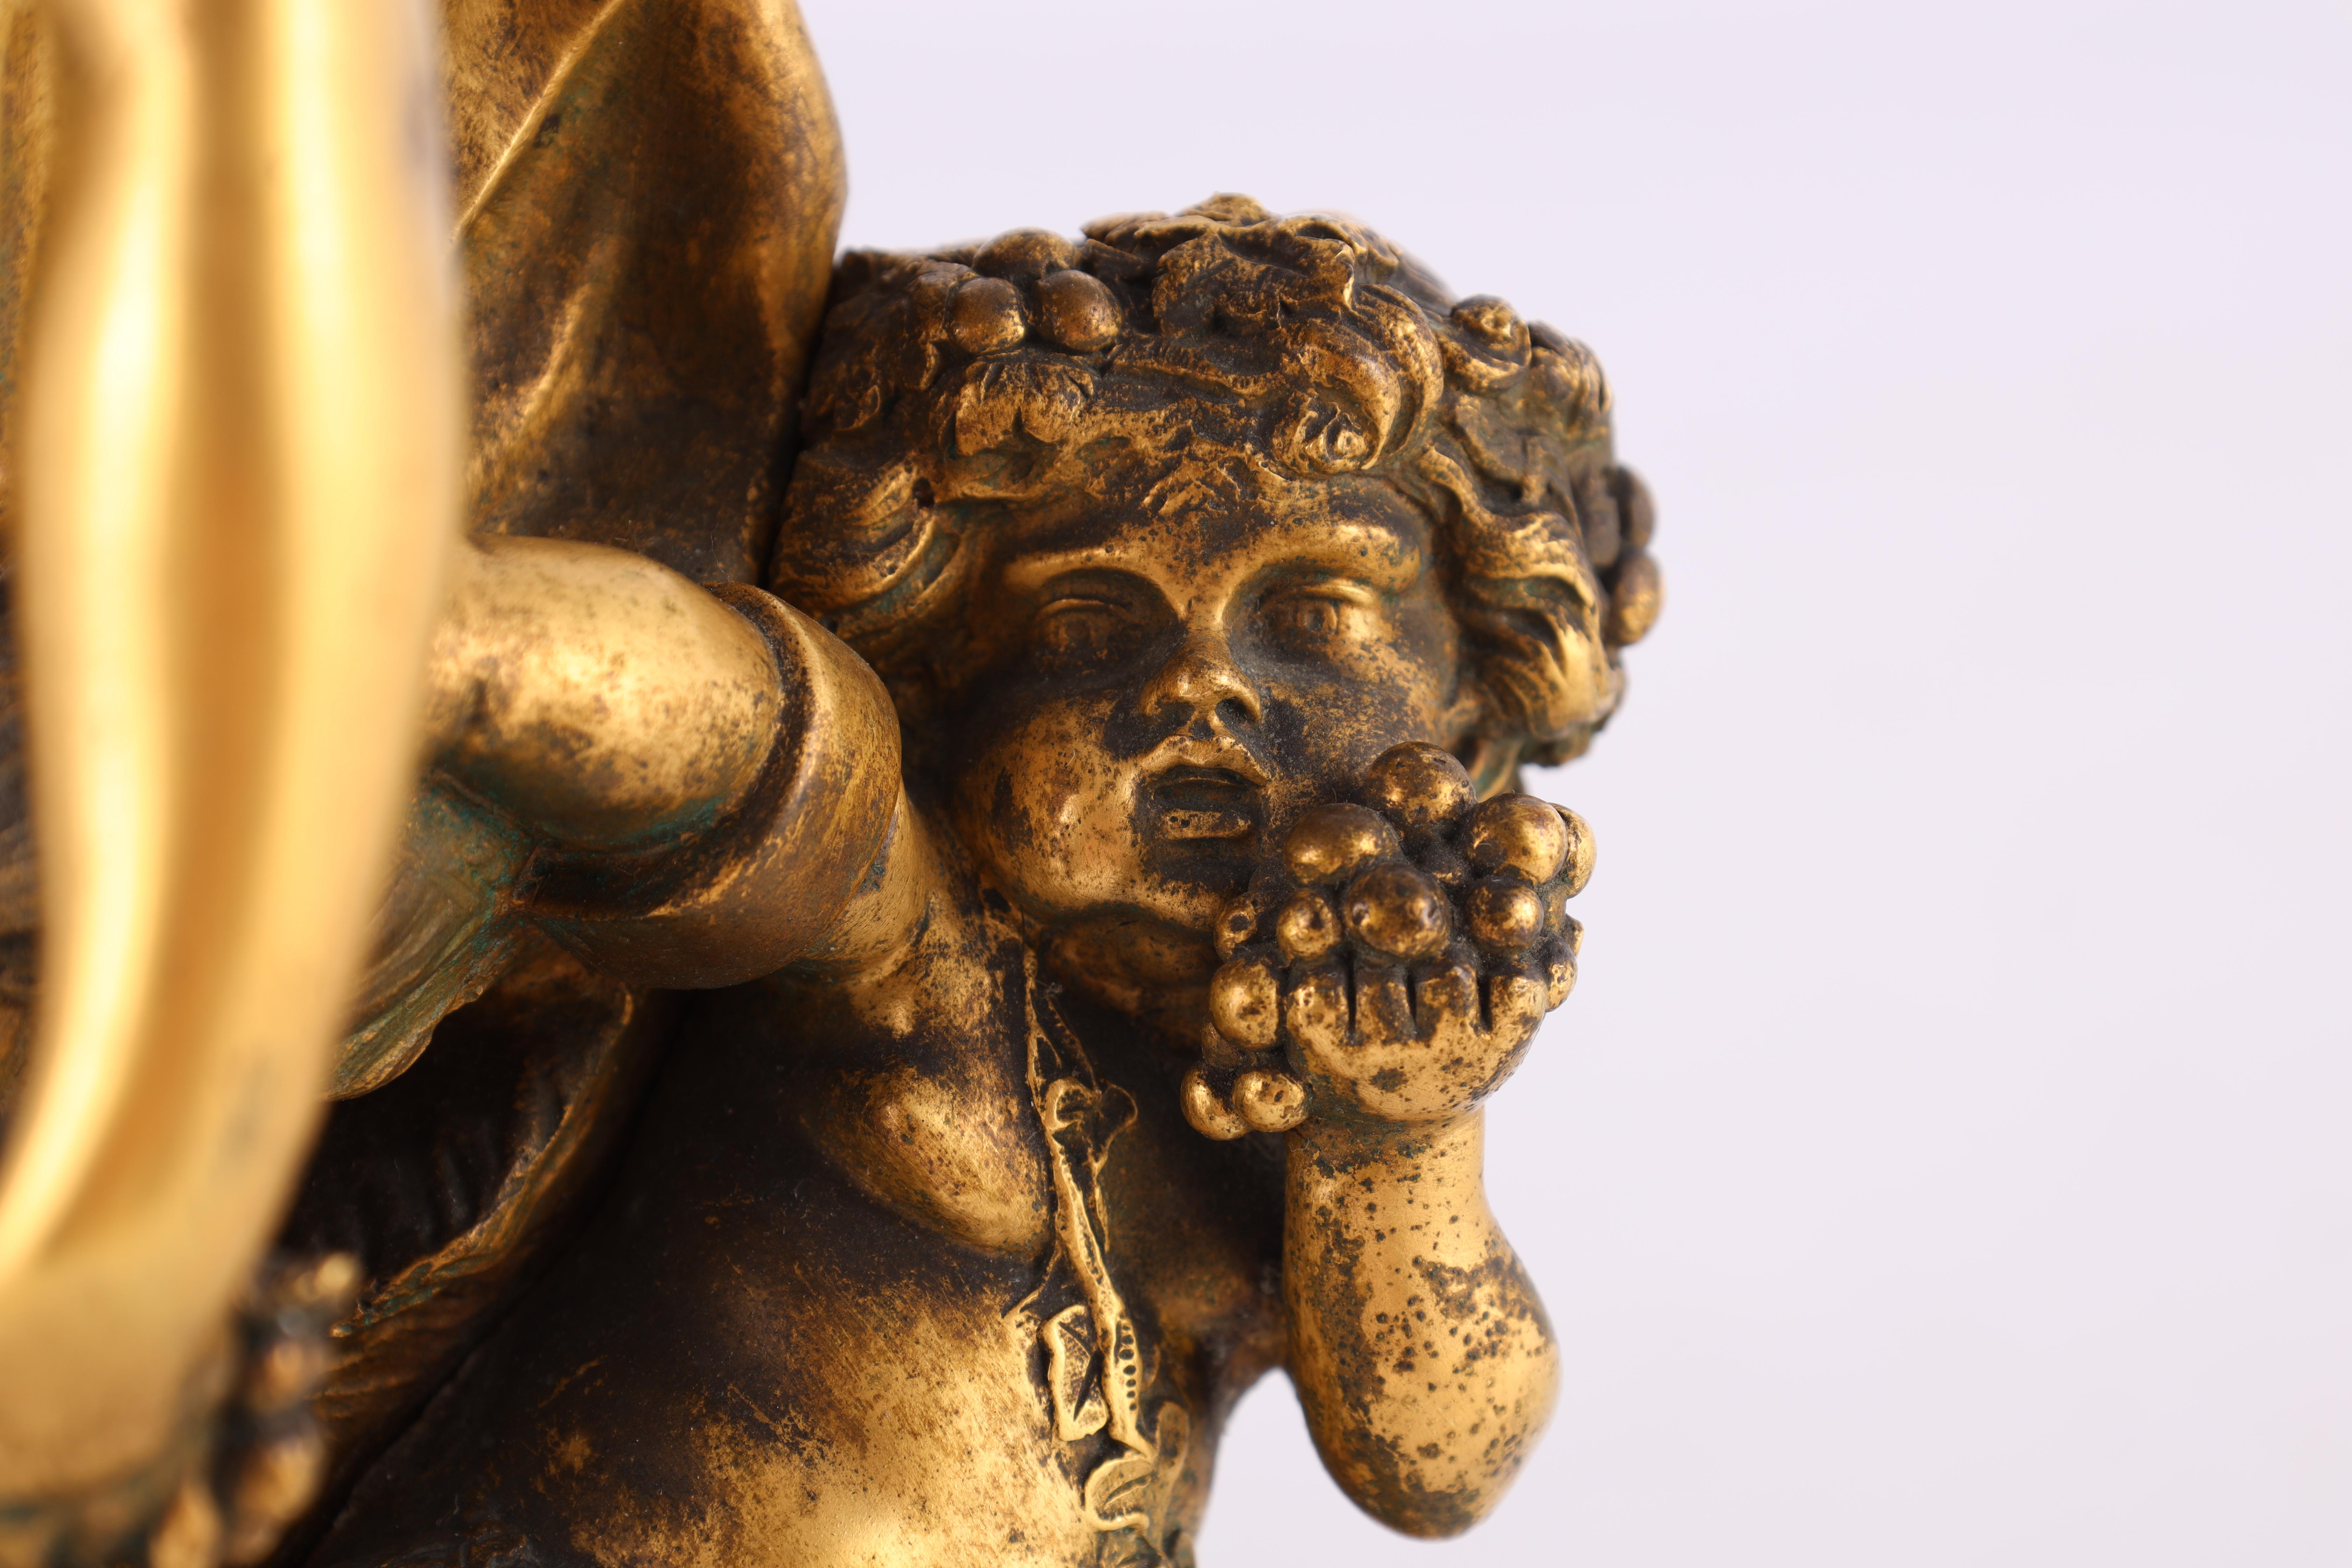 AFTER MICHAEL CLAUDE CLODION A LATE 19TH CENTURY FRENCH GILT BRONZE SCULPTURE titled 'Bacchanalia' - Image 6 of 10